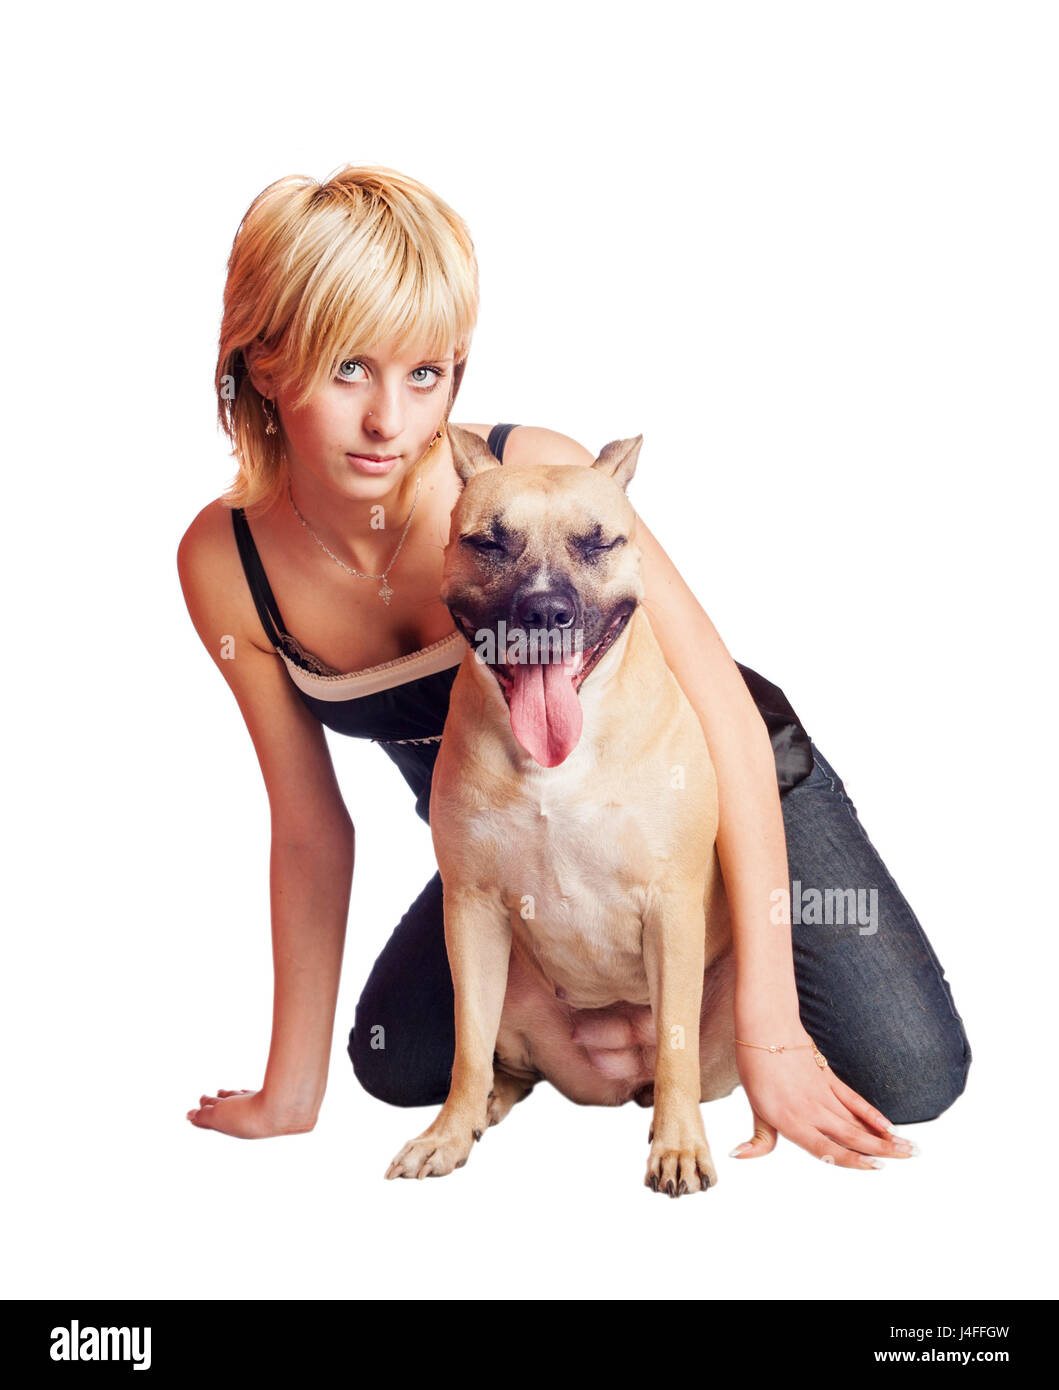 Woman and dog sitting together Fighting dog terrier and woman  isolated on white - Stock Image